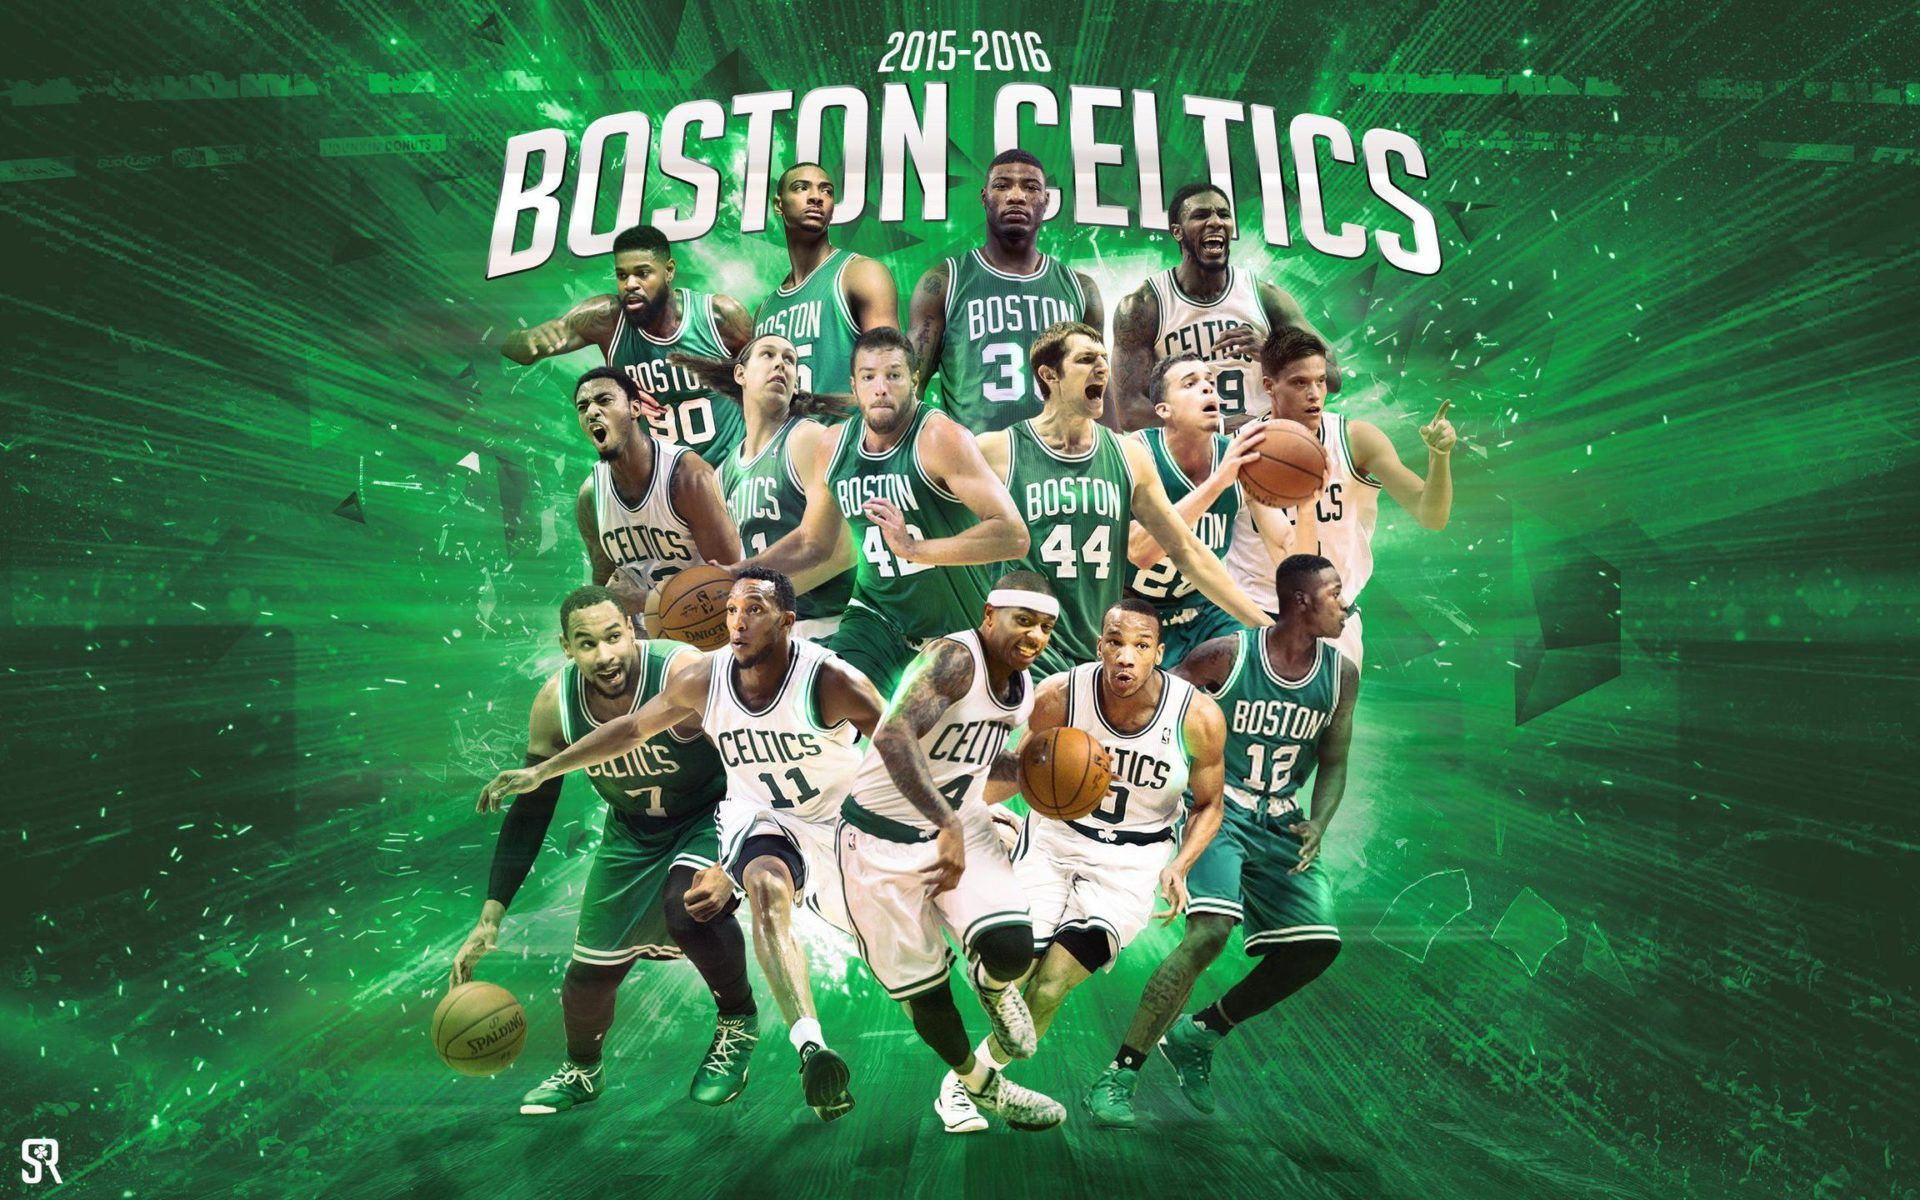 Boston Celtics Wallpapers Top Free Boston Celtics Backgrounds Wallpaperaccess